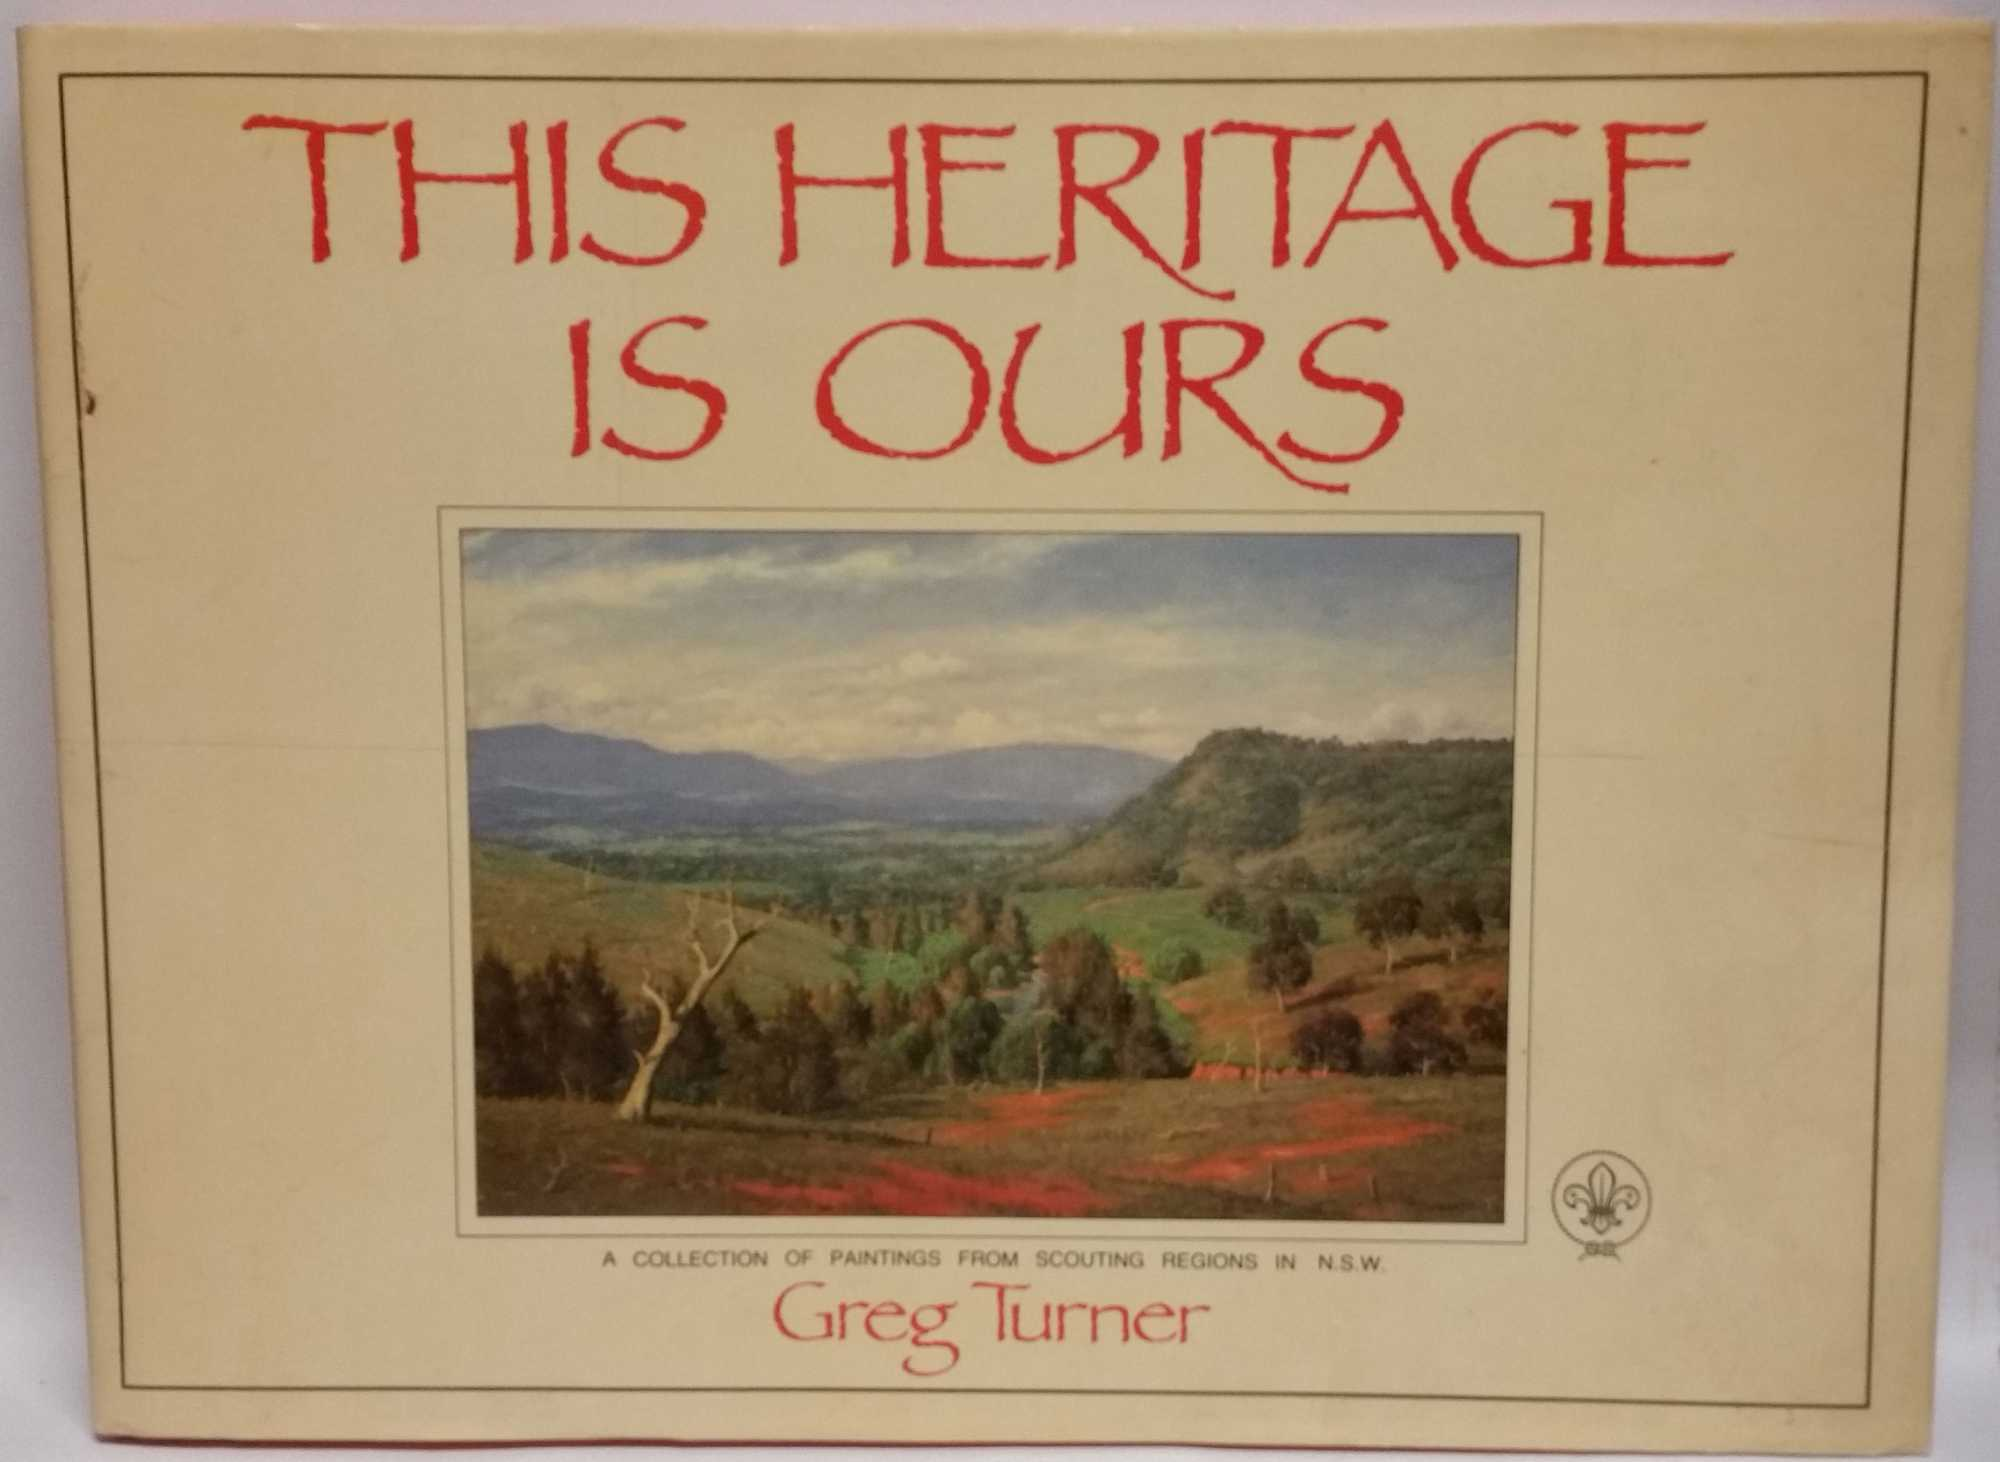 This Heritage Is Ours: A Collection of Paintings from Scouting Regions in N.S.W., Greg Turner